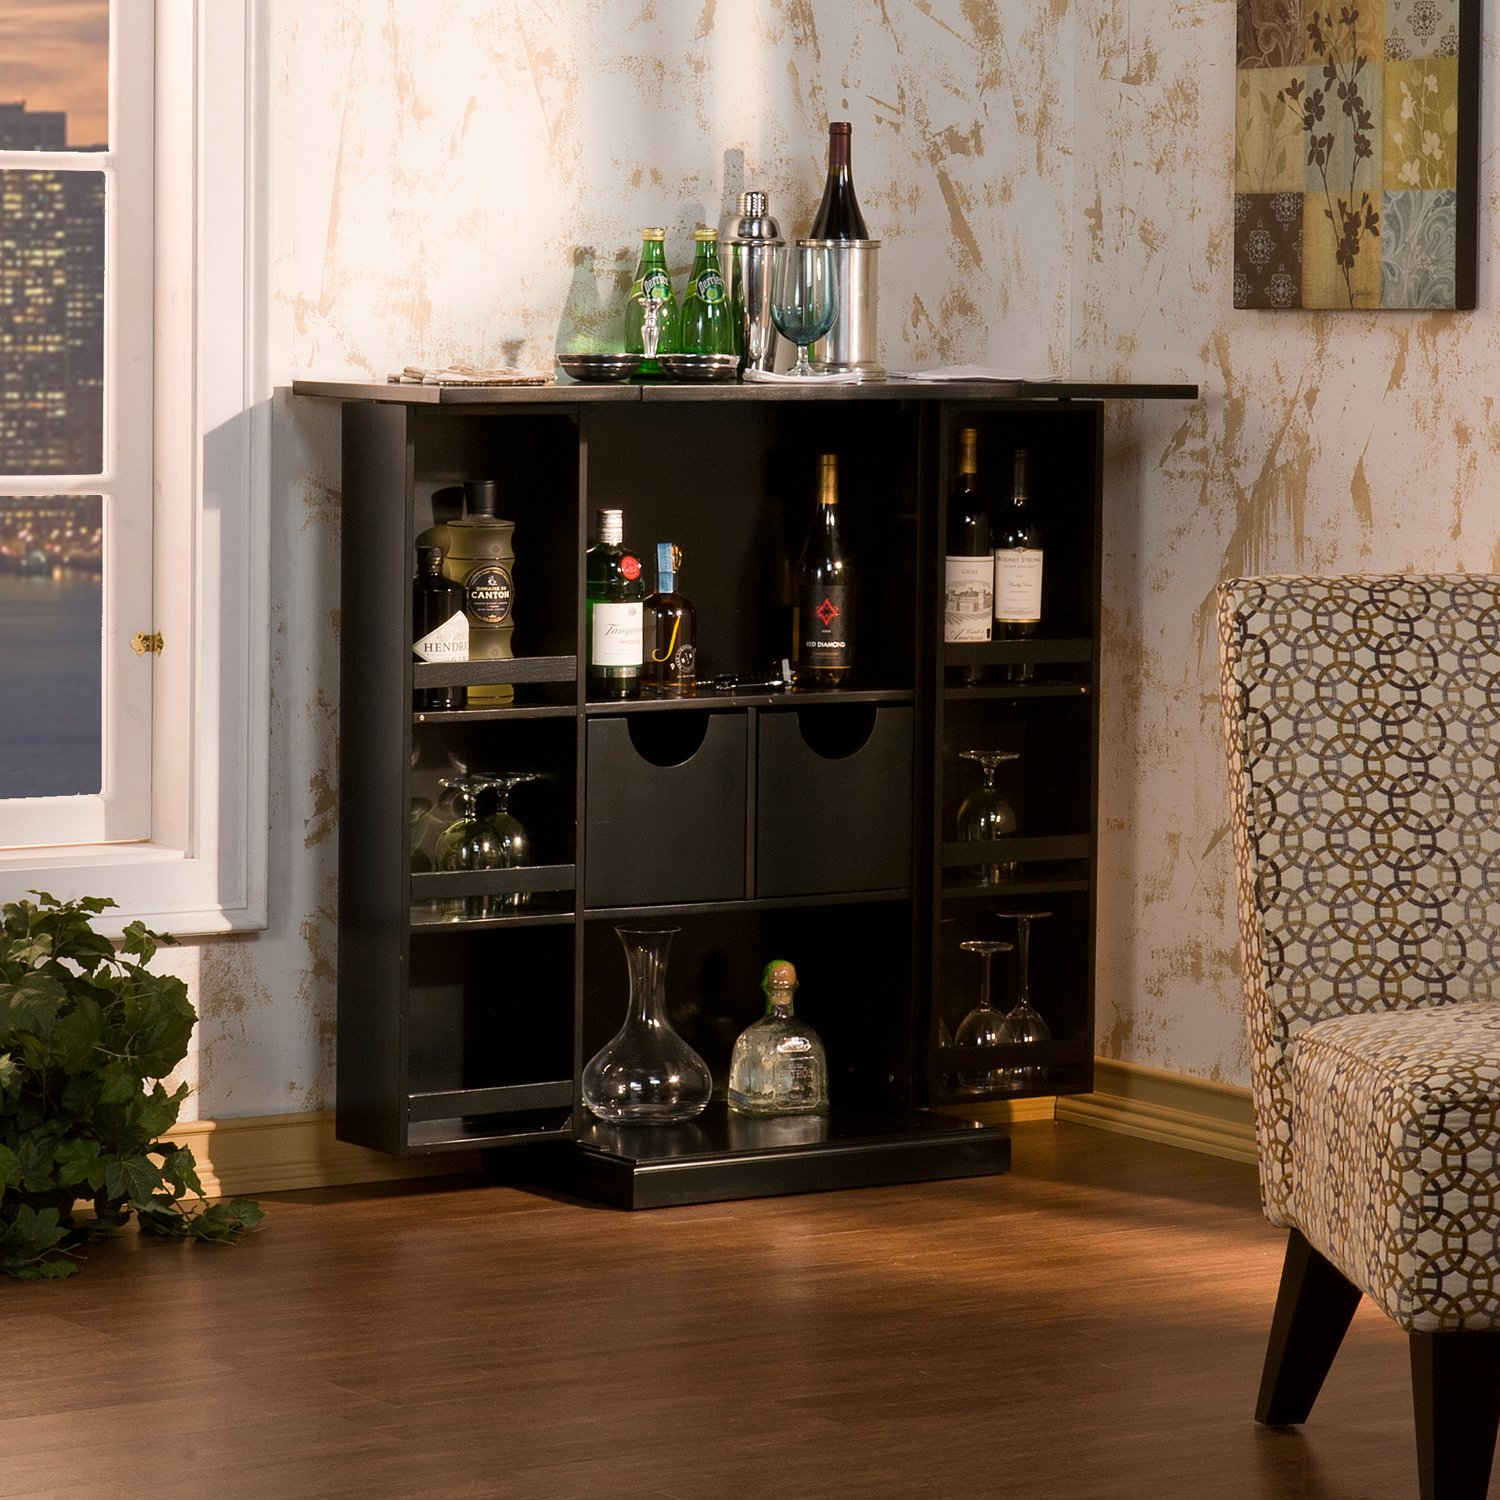 Fold Away Storage Bar For Wine Glasses - Black FurnitureMaxx